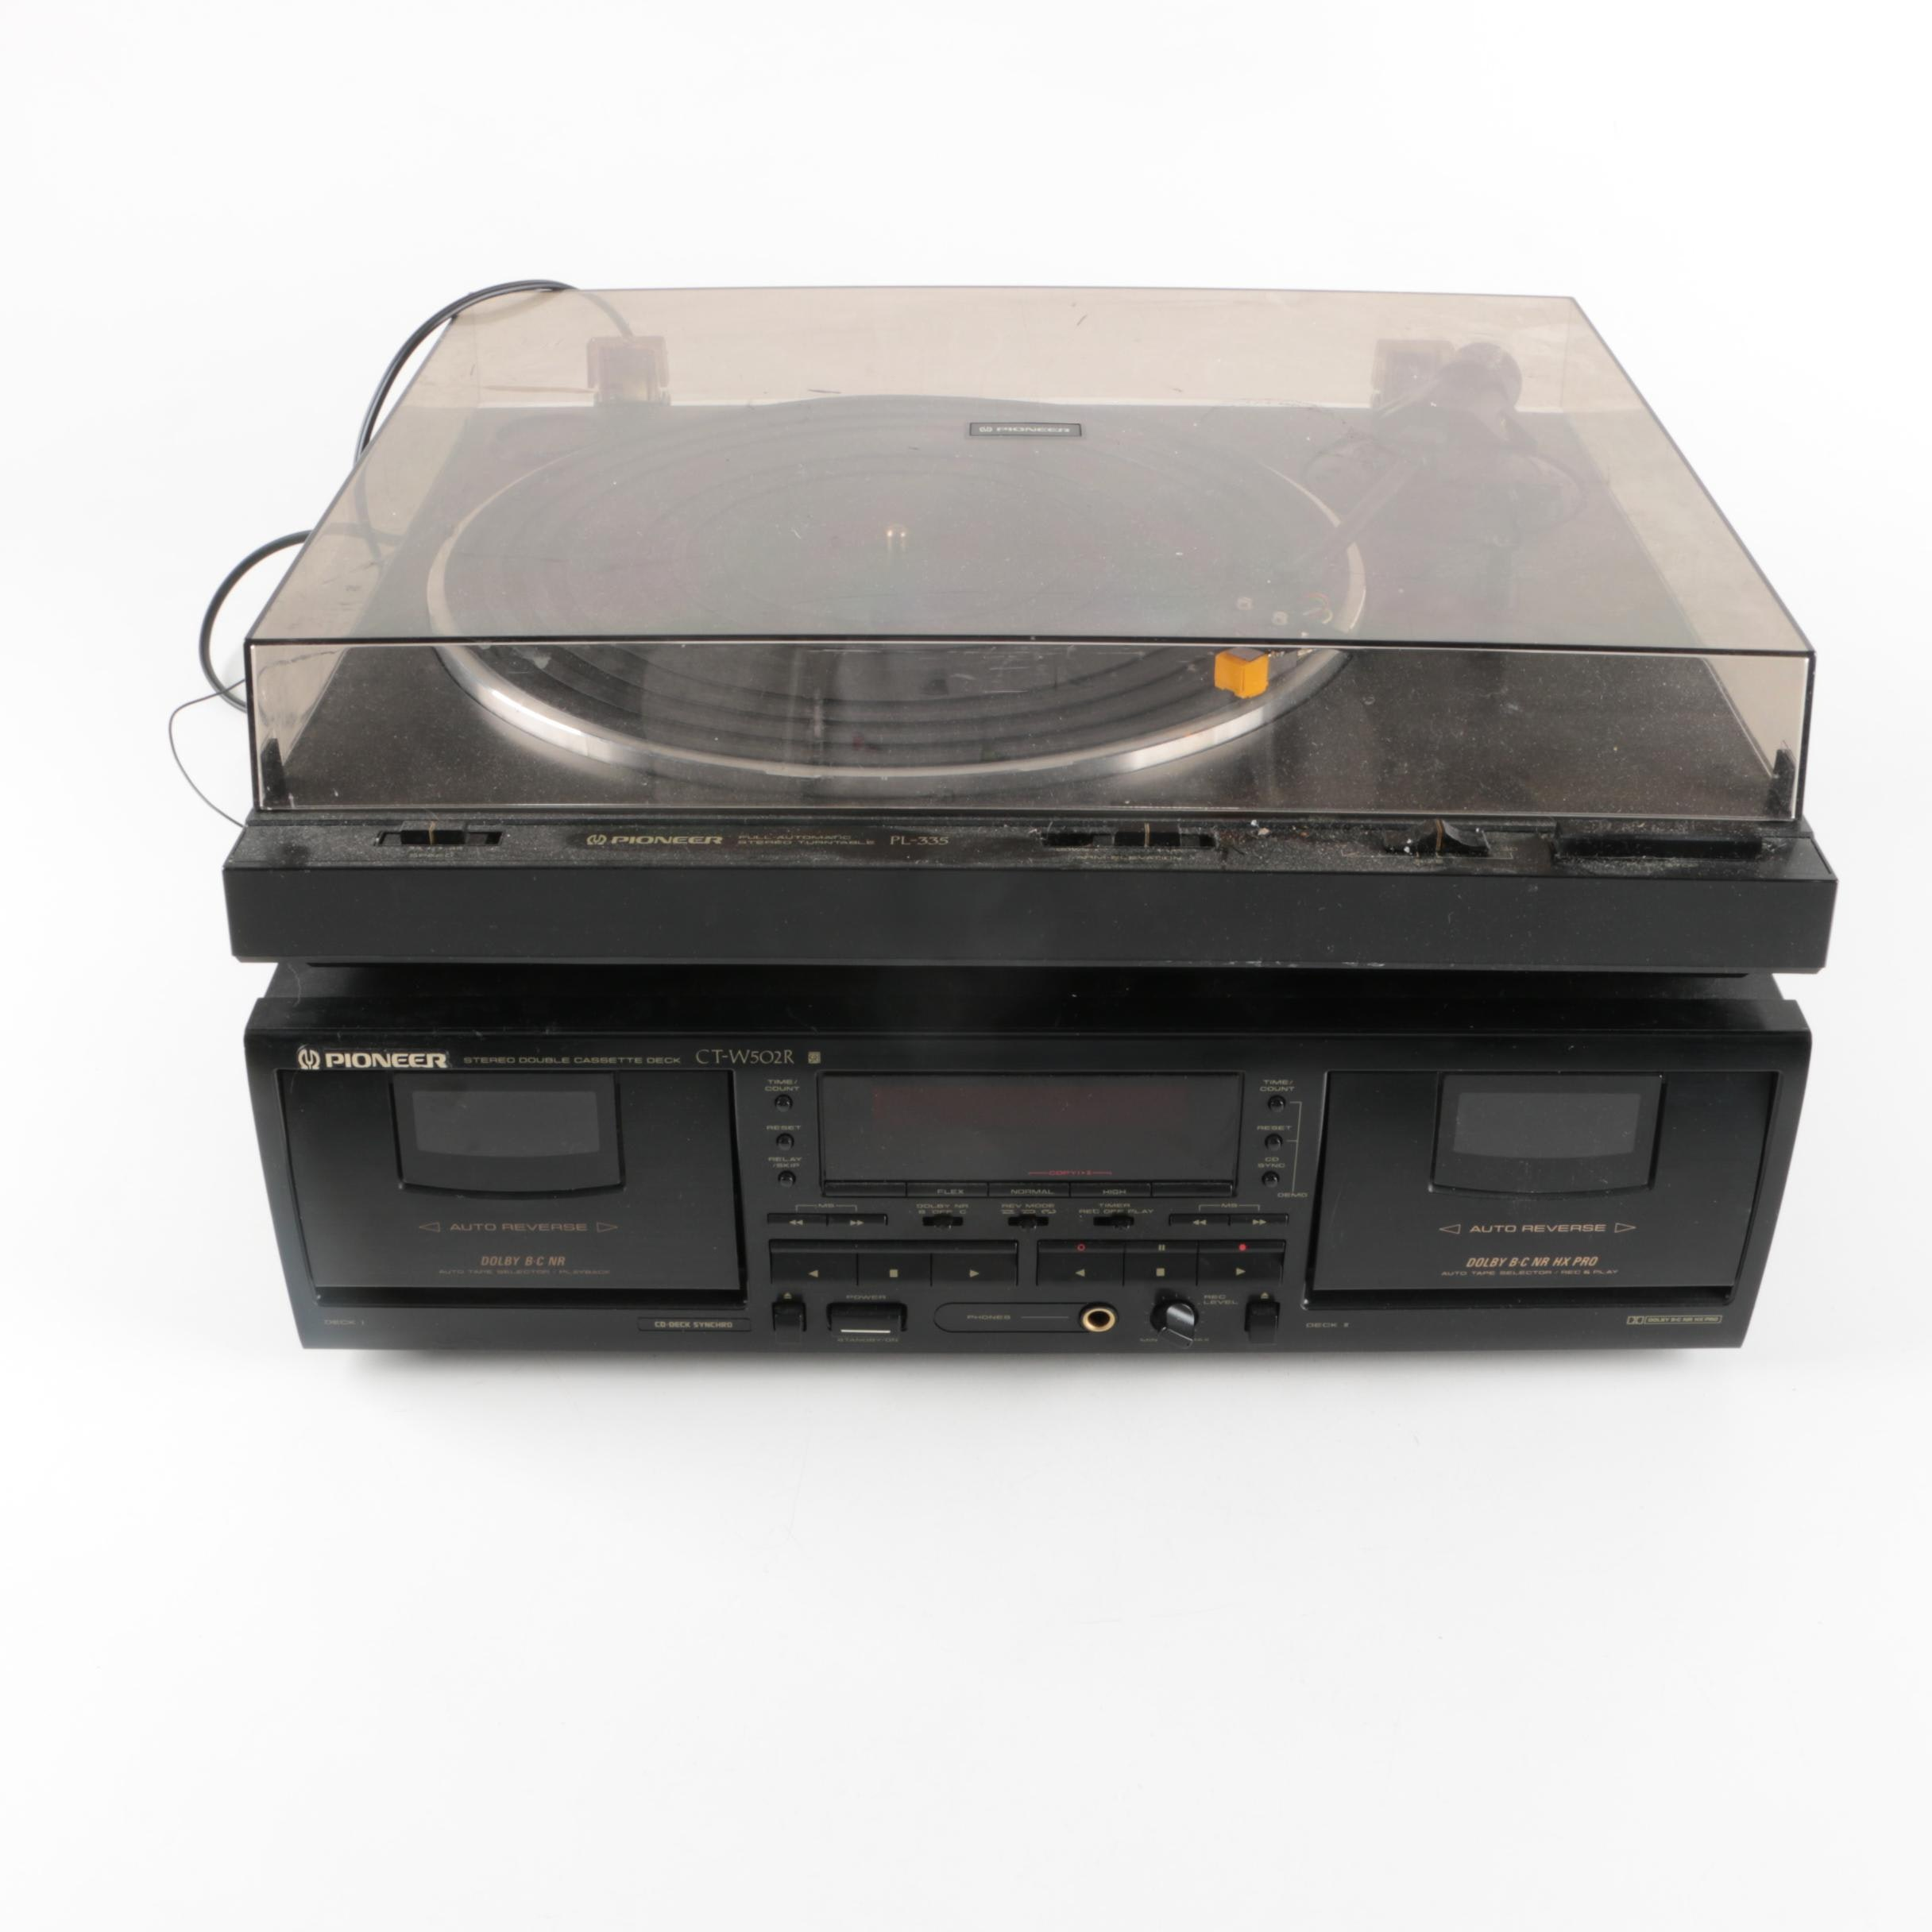 Pioneer CT-W502R Stereo Cassette Deck and PL-335 Stereo Turntable